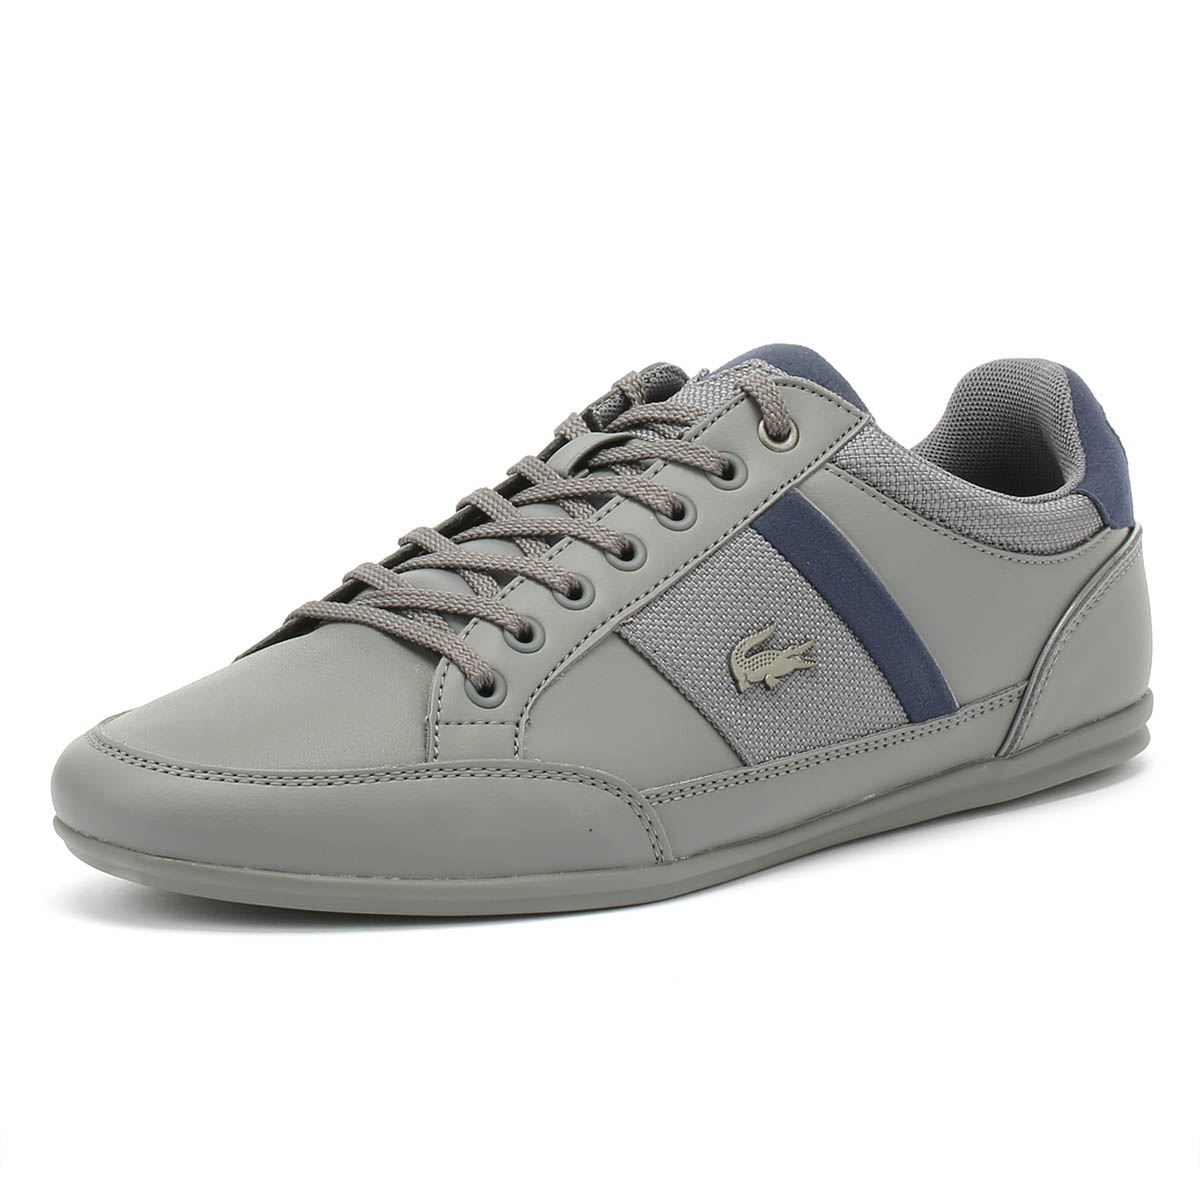 773a7462e Details about Lacoste Mens Trainers Chaymon 318 1 Dark Grey   Navy Sport  Casual Shoes